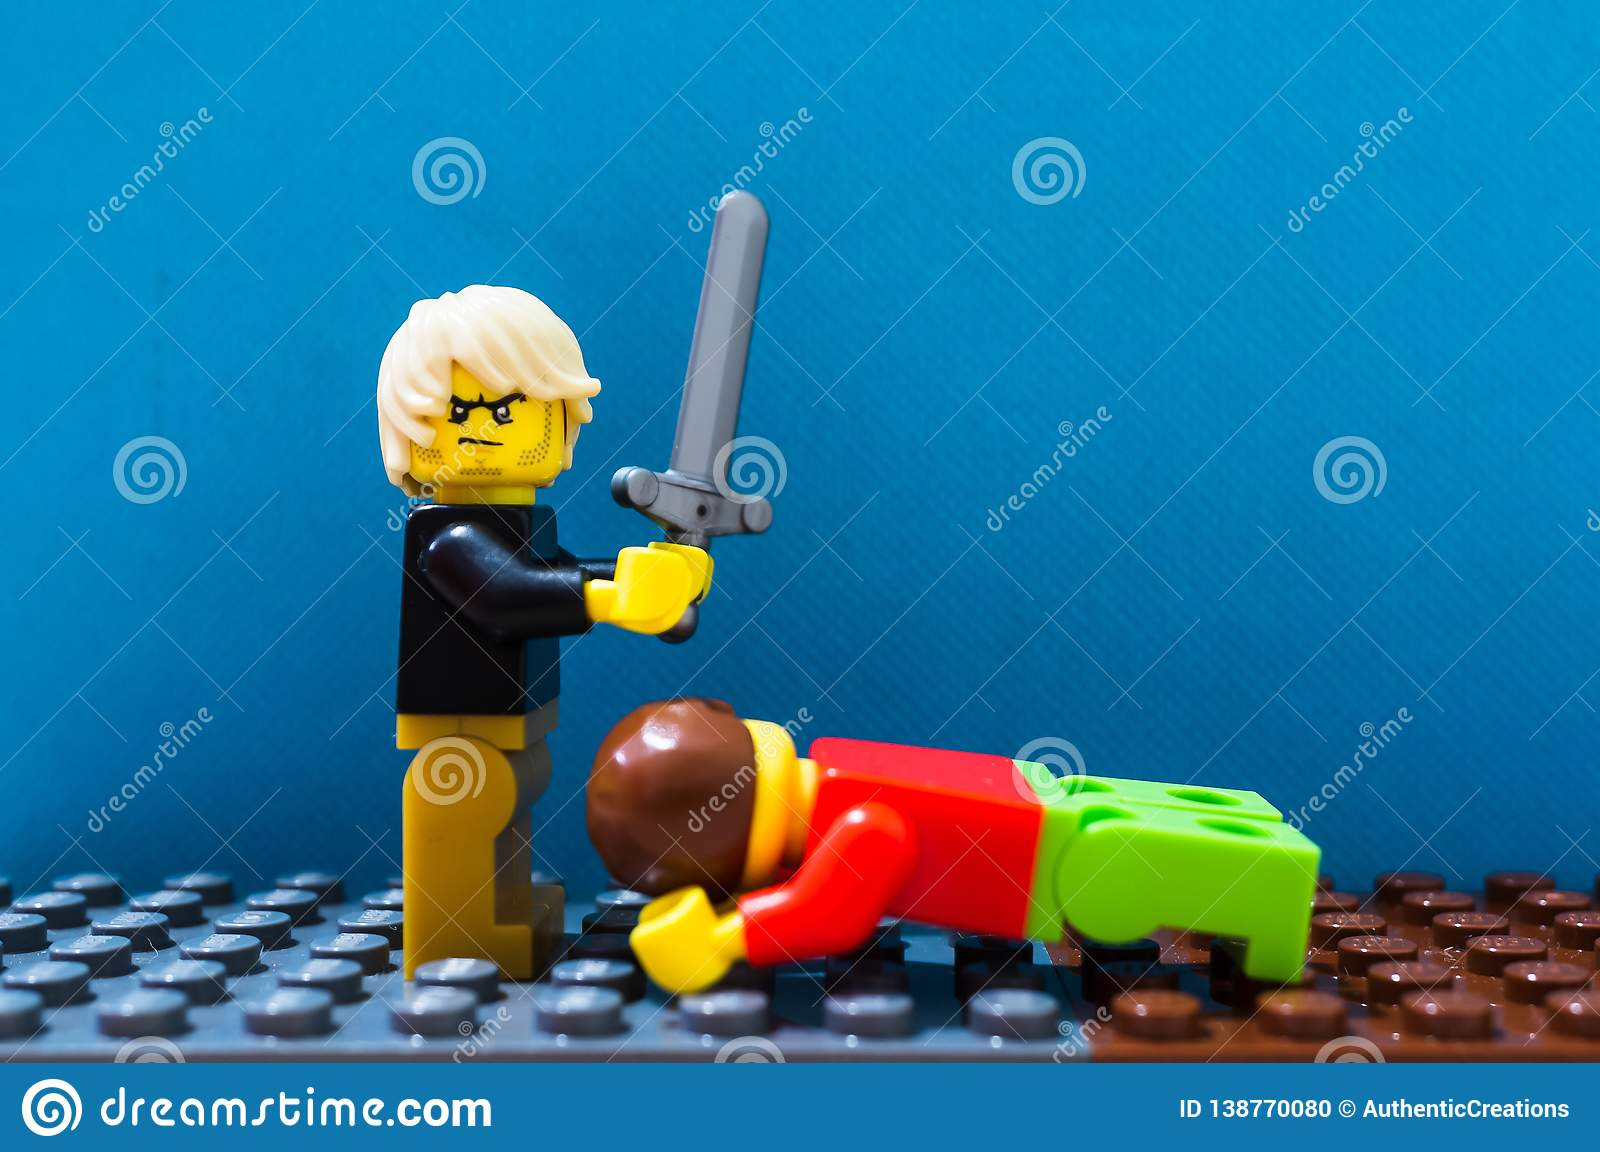 Lego man and sword editorial image  Image of editorial